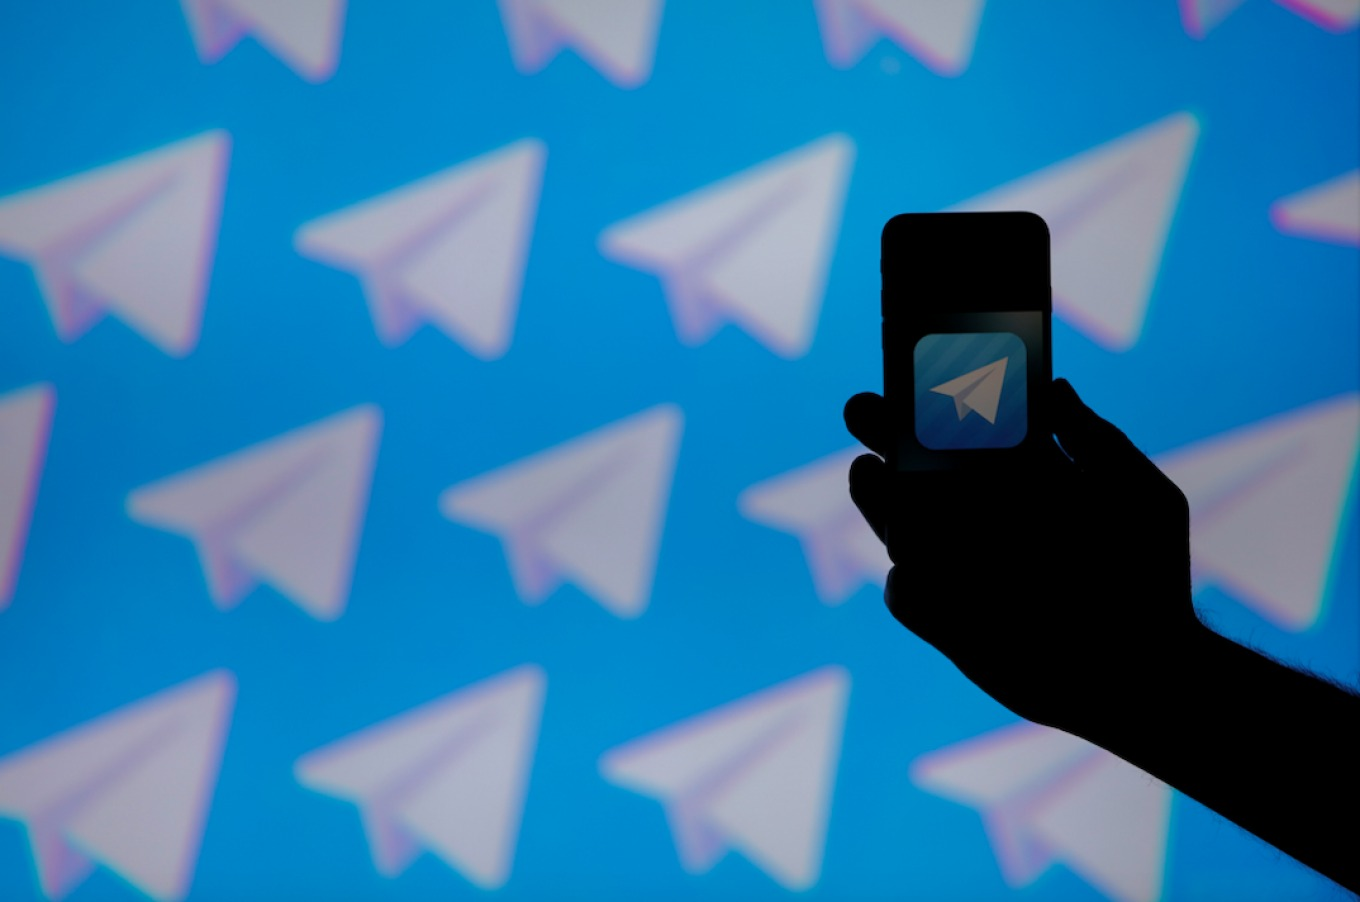 70 million users moved to Telegram during Facebook outage